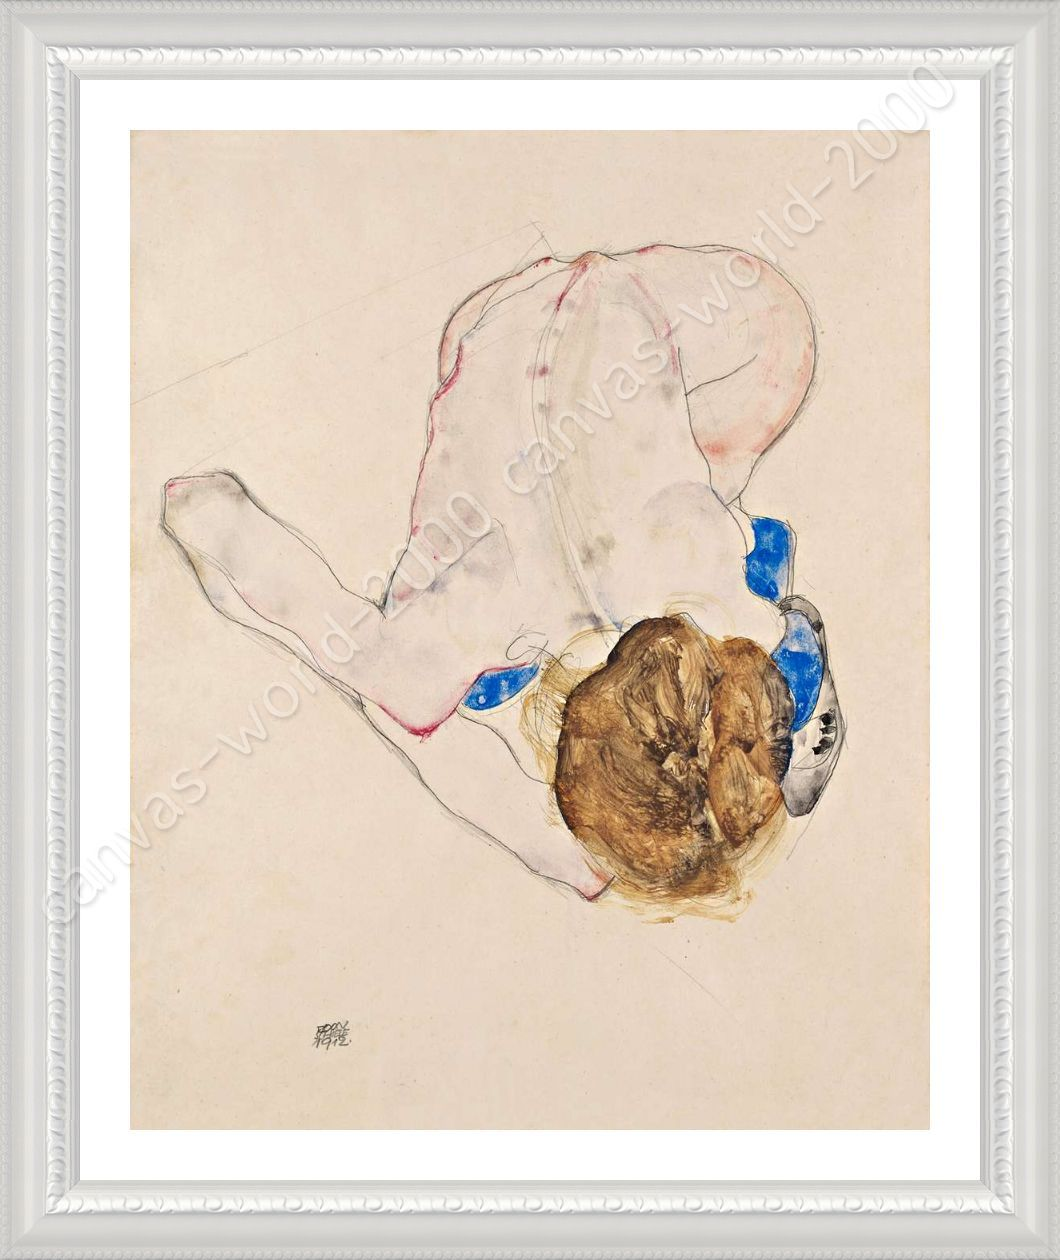 Woman With Blue Stockings by Egon Schiele | Framed canvas | Wall art ...